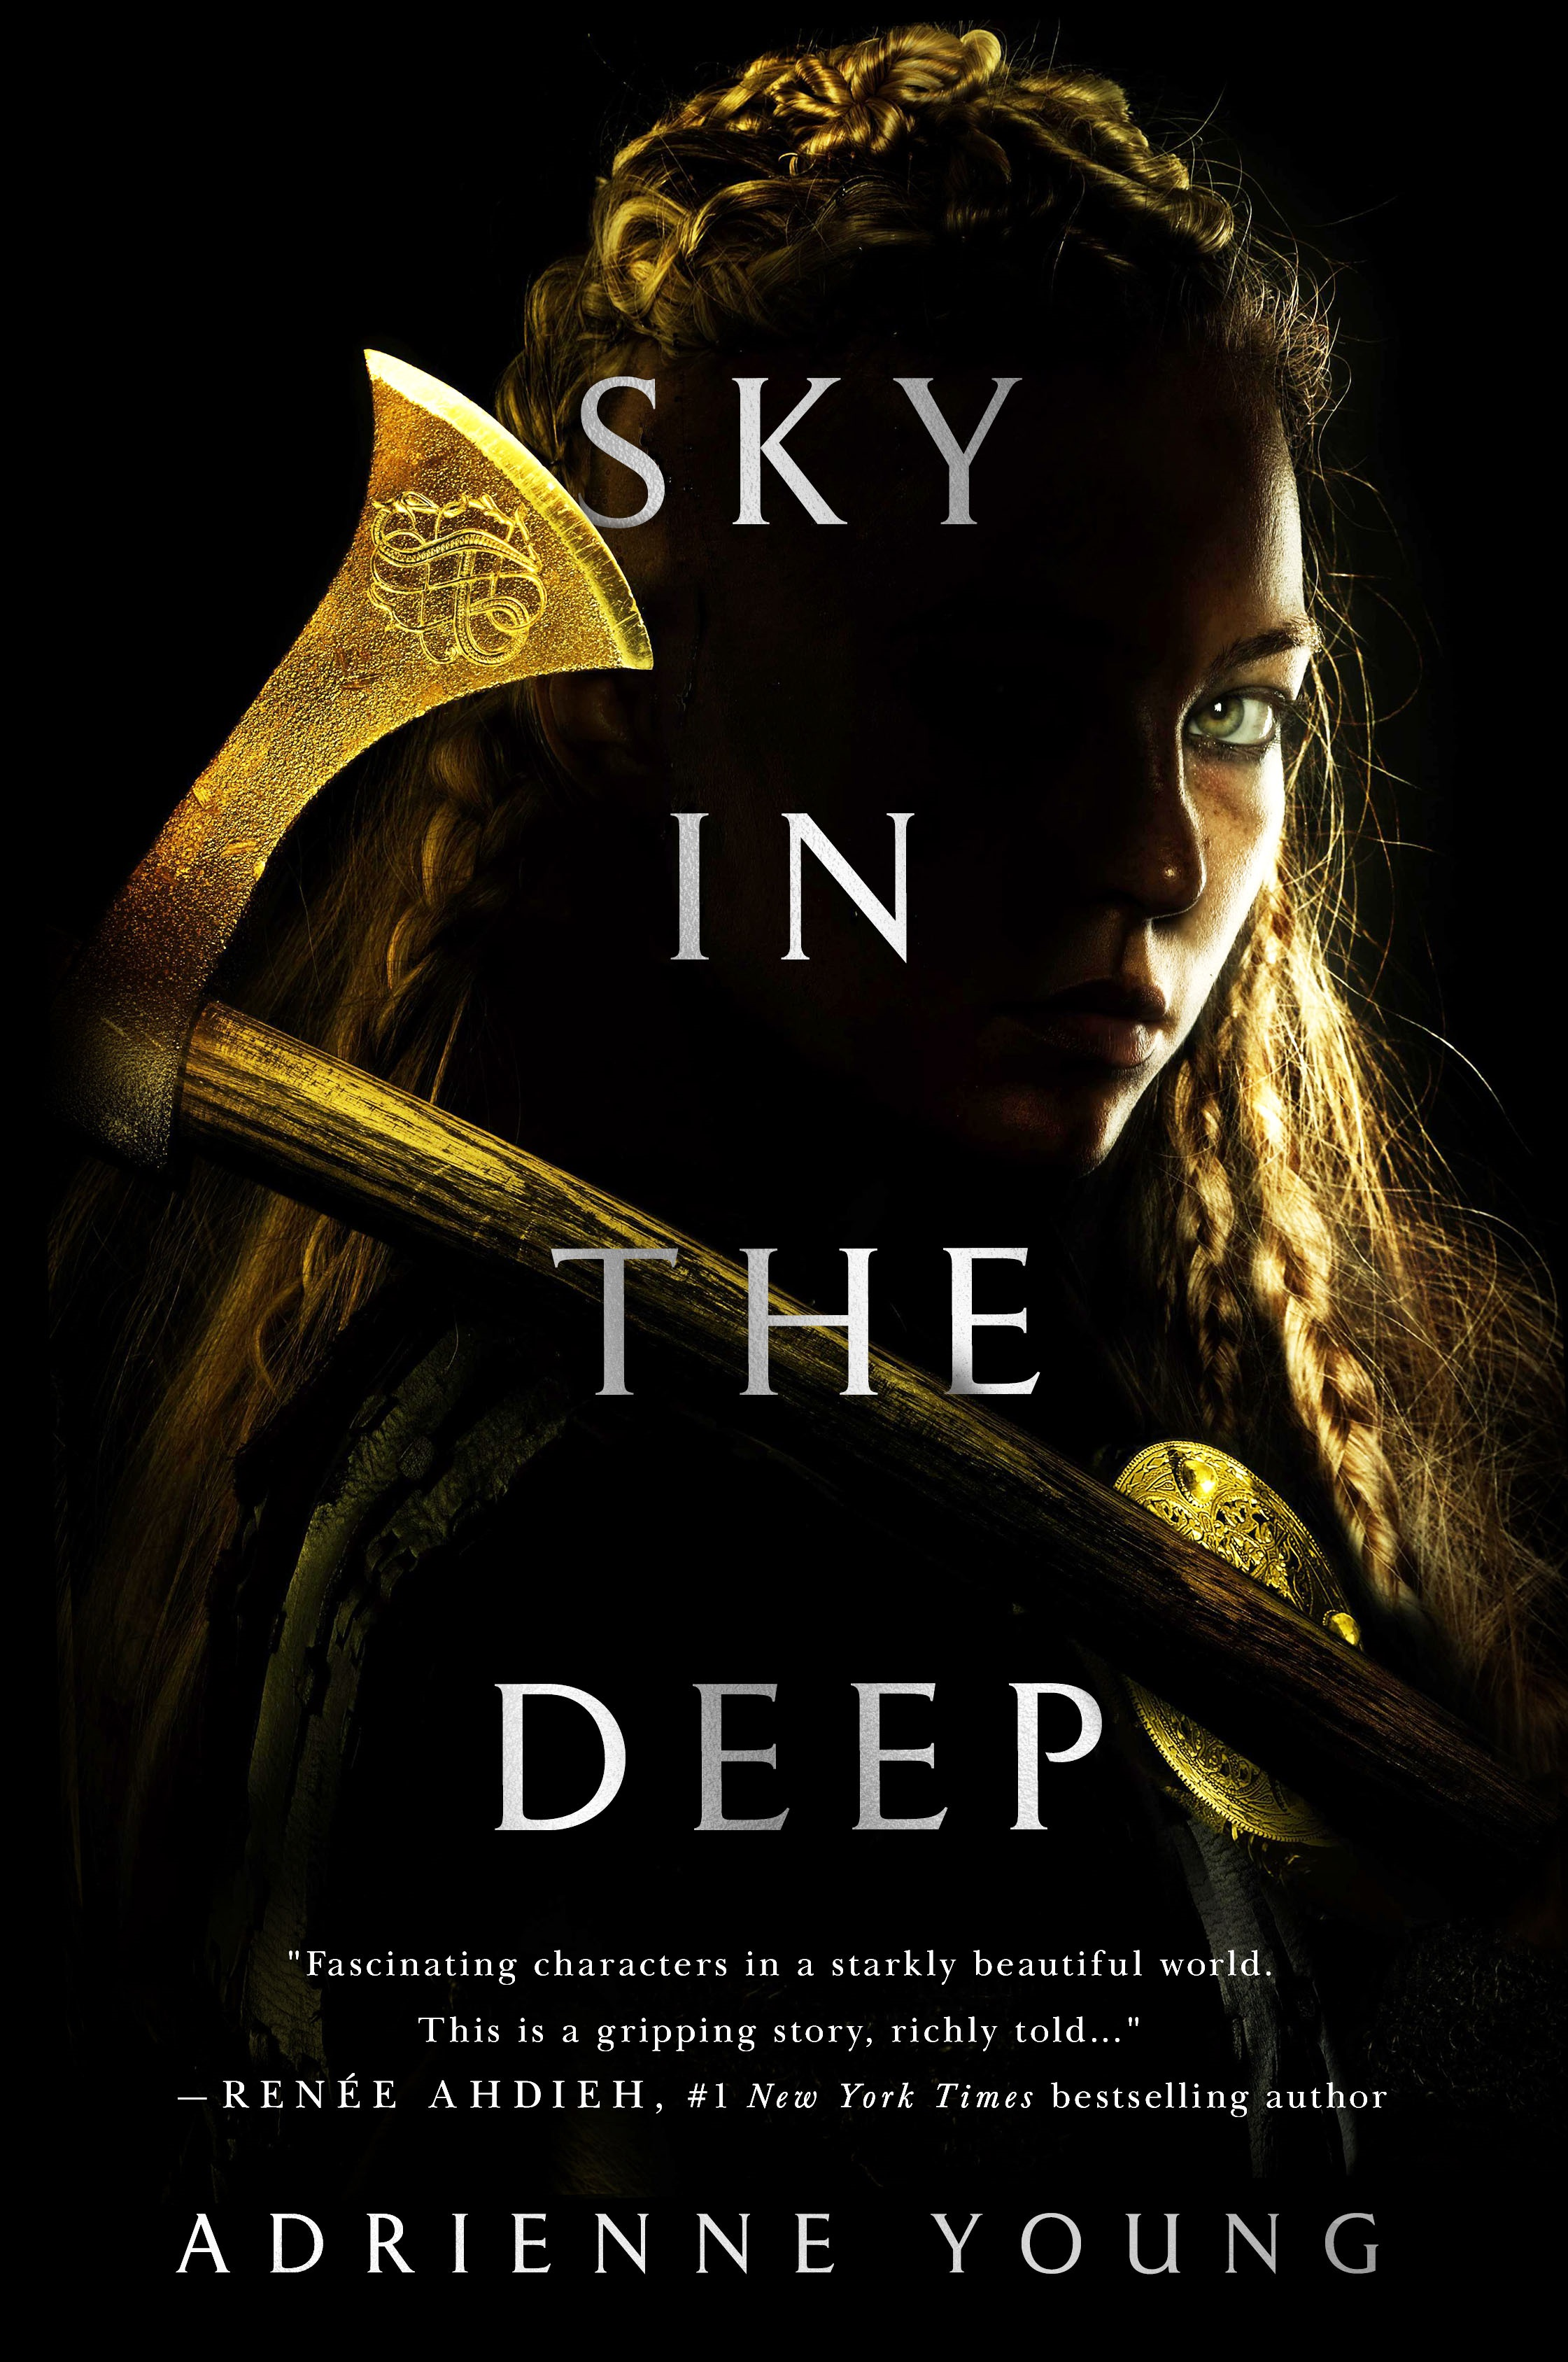 Blog Tour & Review: Sky in the Deep by Adrienne Young